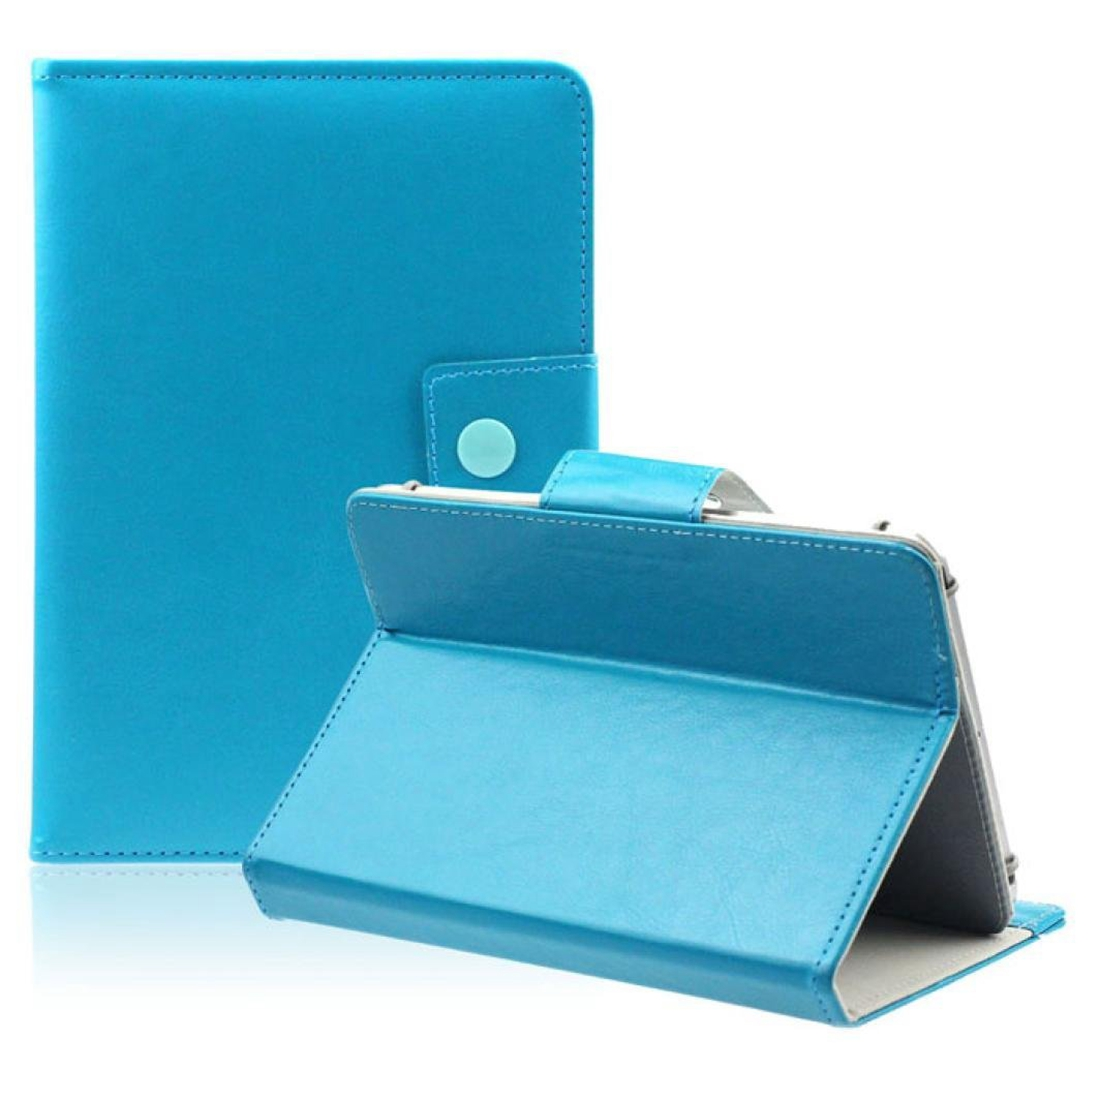 10 Inch Universal Tablet PC Case Crystal PU Leather Support Case